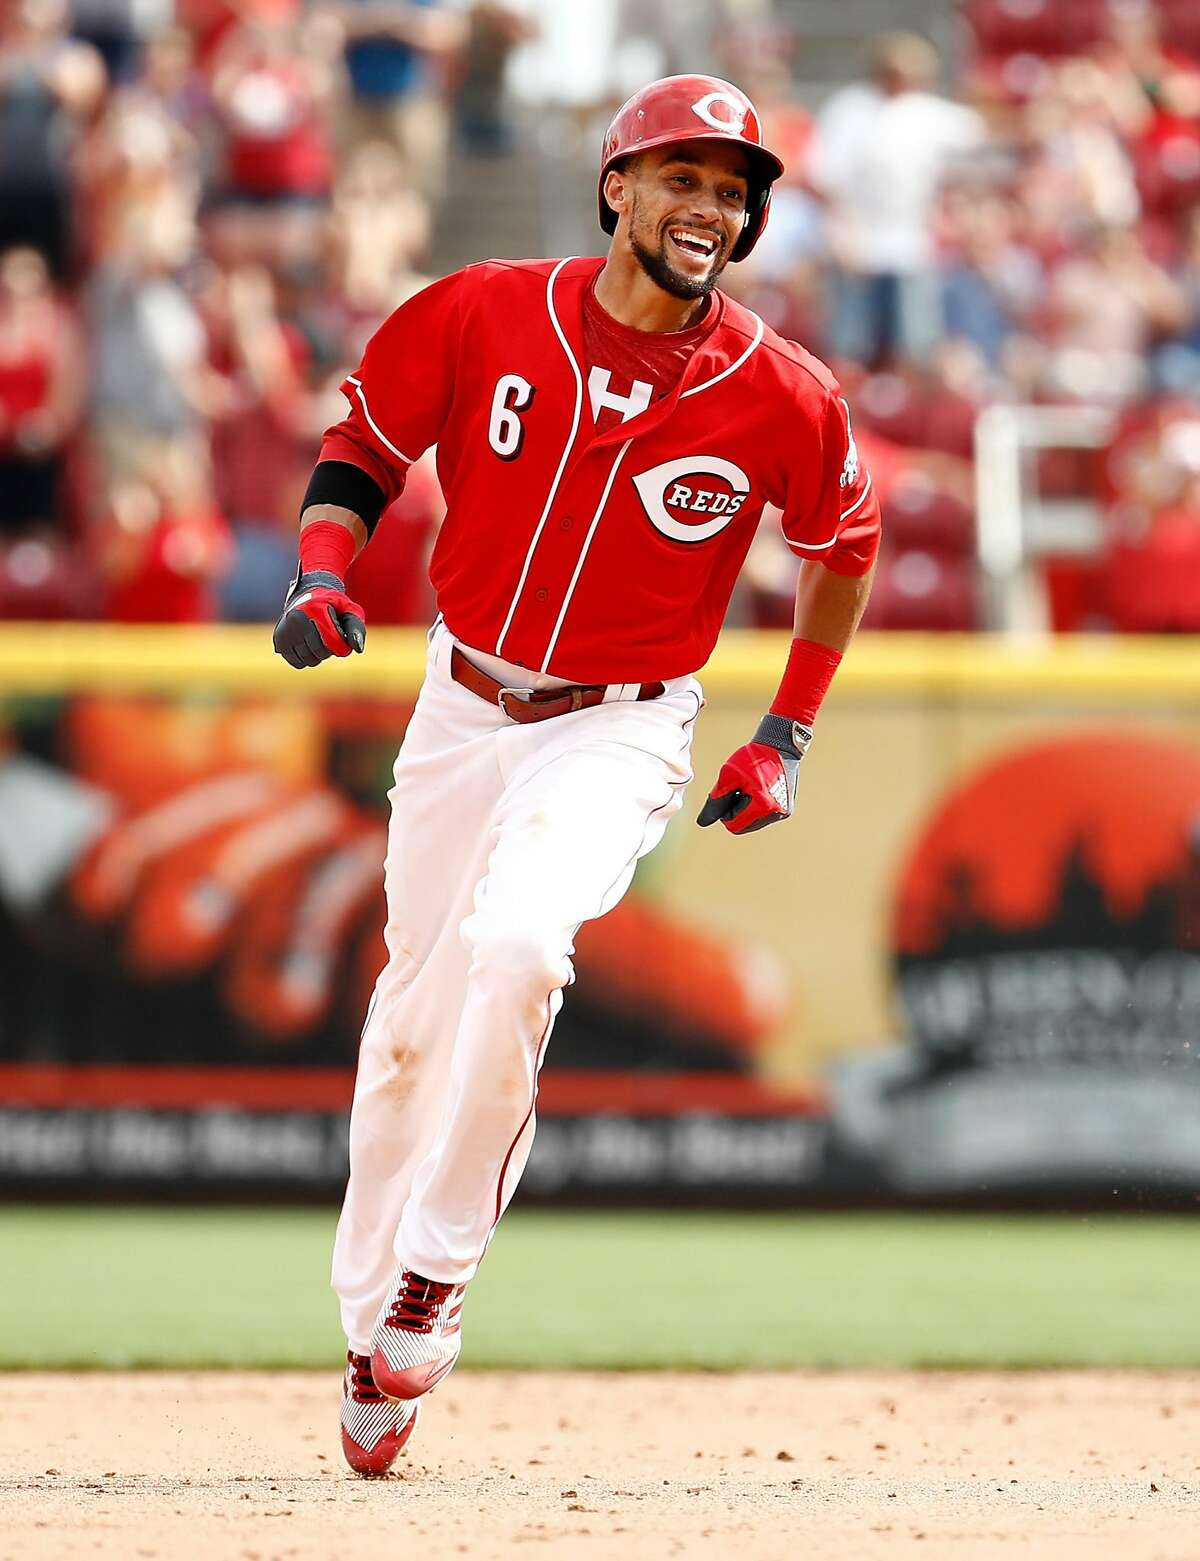 CINCINNATI, OH - SEPTEMBER 04: Billy Hamilton #6 of the Cincinnati Reds celebrates after hitting the game winning home run in the 9th inning against the Milwaukee Brewers at Great American Ball Park on September 4, 2017 in Cincinnati, Ohio. The Reds won 5-4. (Photo by Andy Lyons/Getty Images)